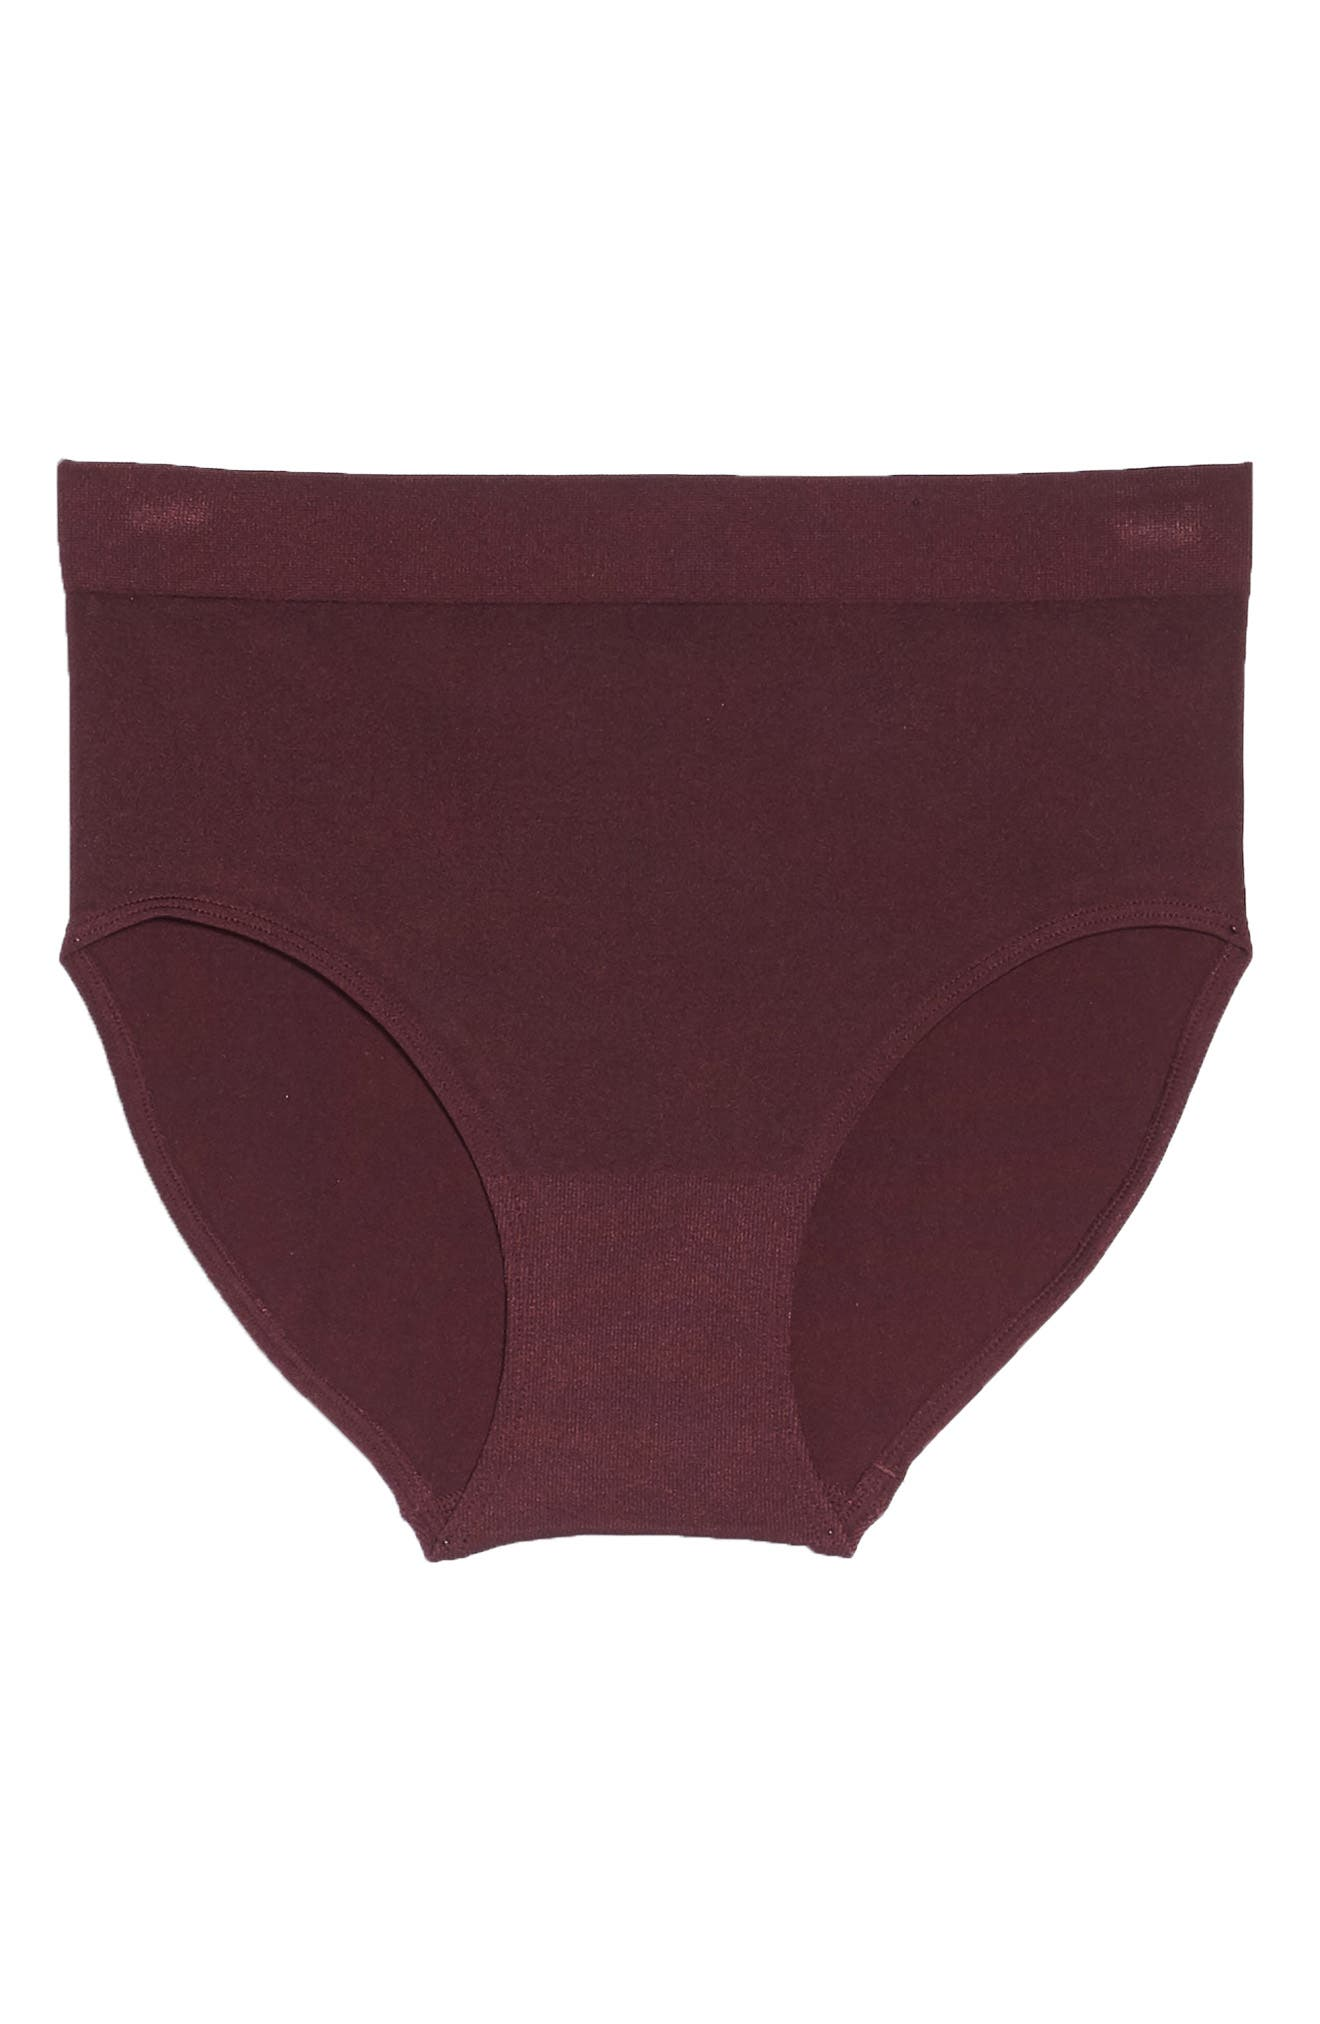 B Smooth Briefs,                             Alternate thumbnail 280, color,